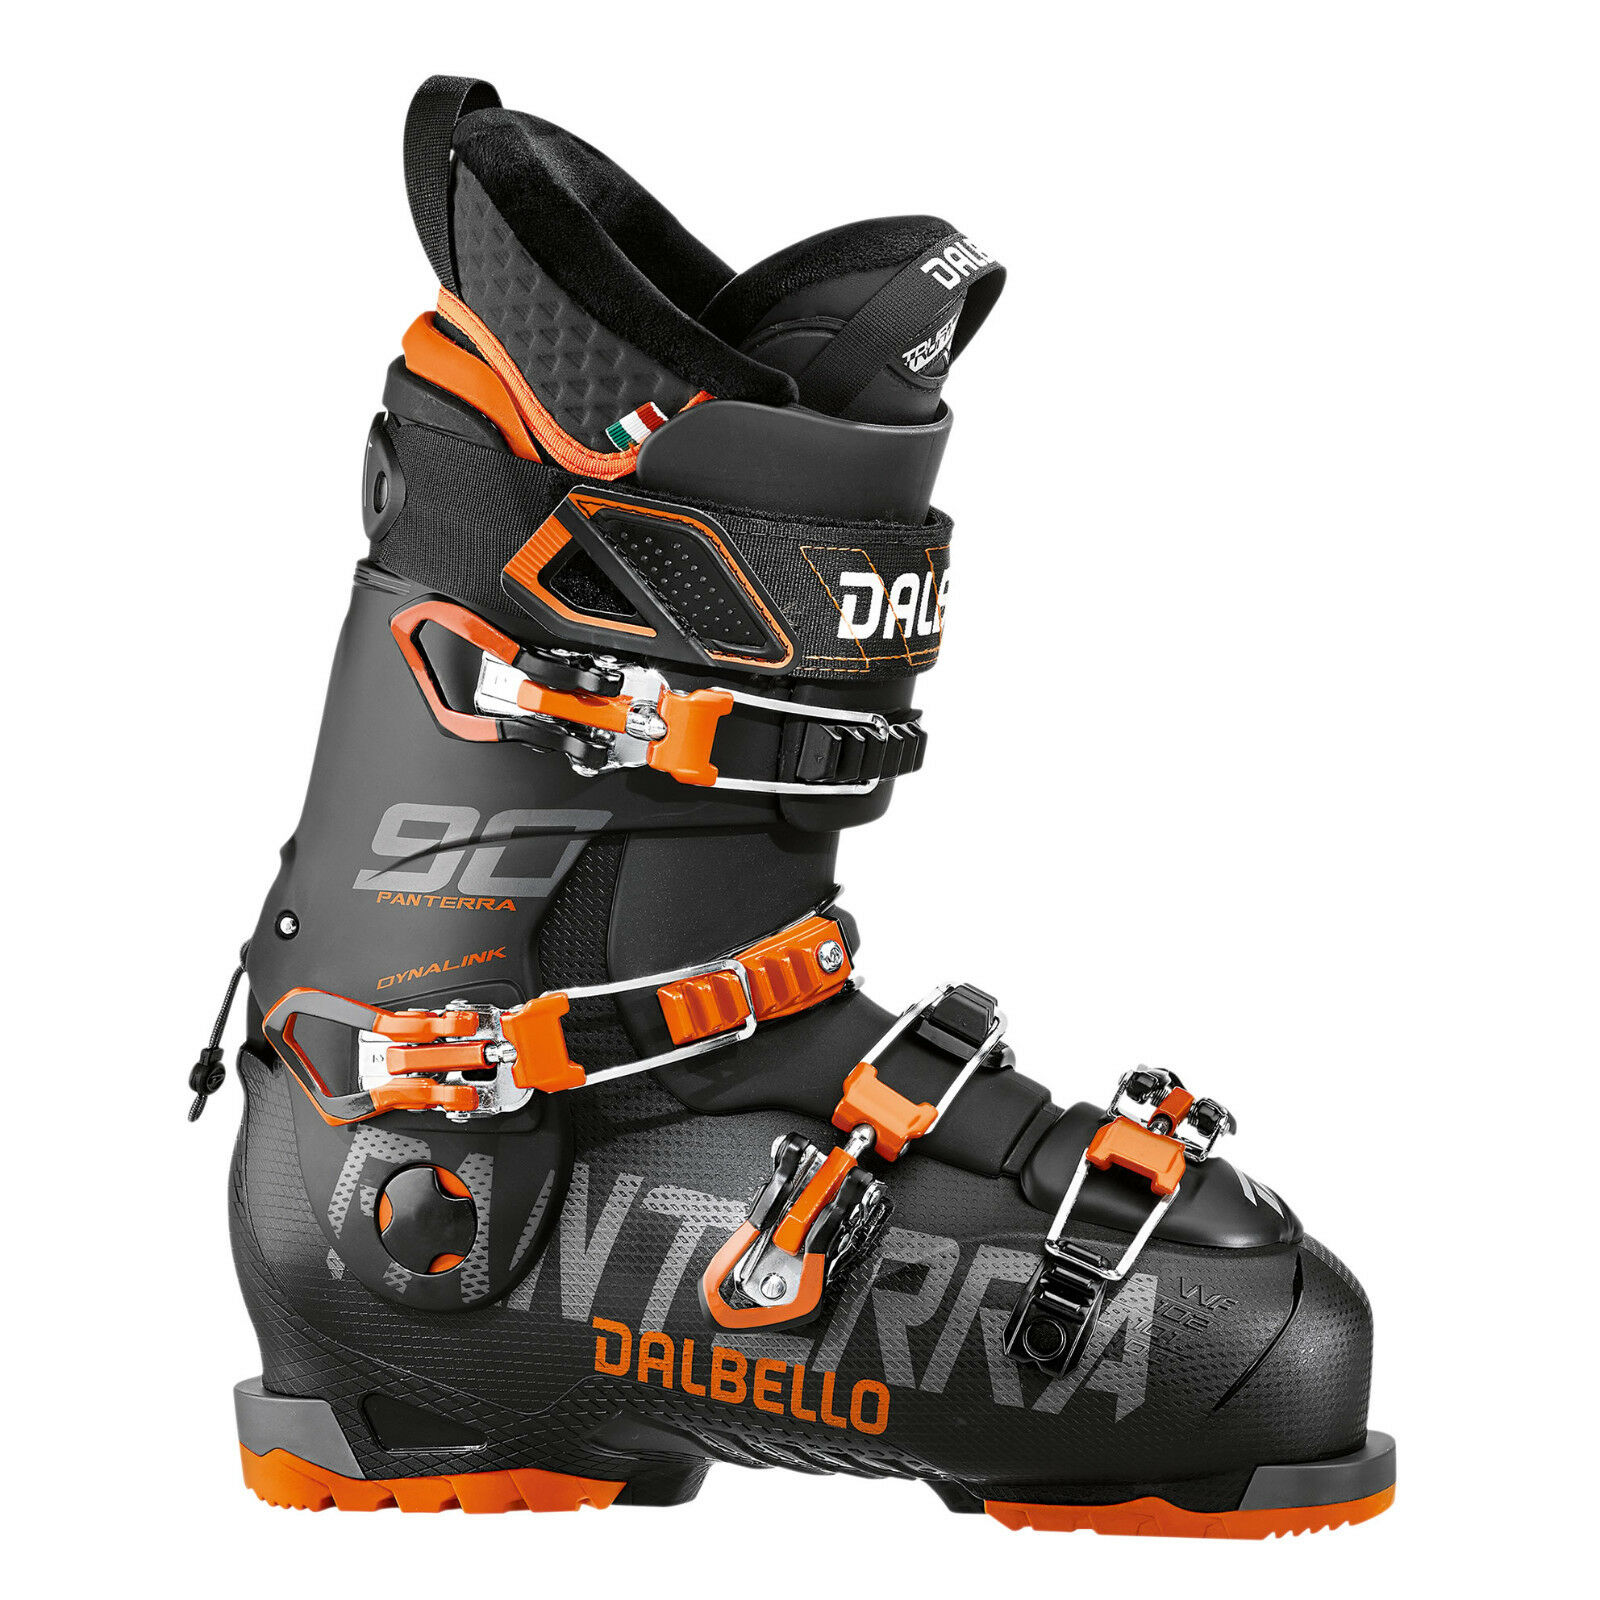 Stiefel  Skifahren ski boot All mountain DALBELLO PANTERRA 90 Saison 2018 2019  wholesape cheap